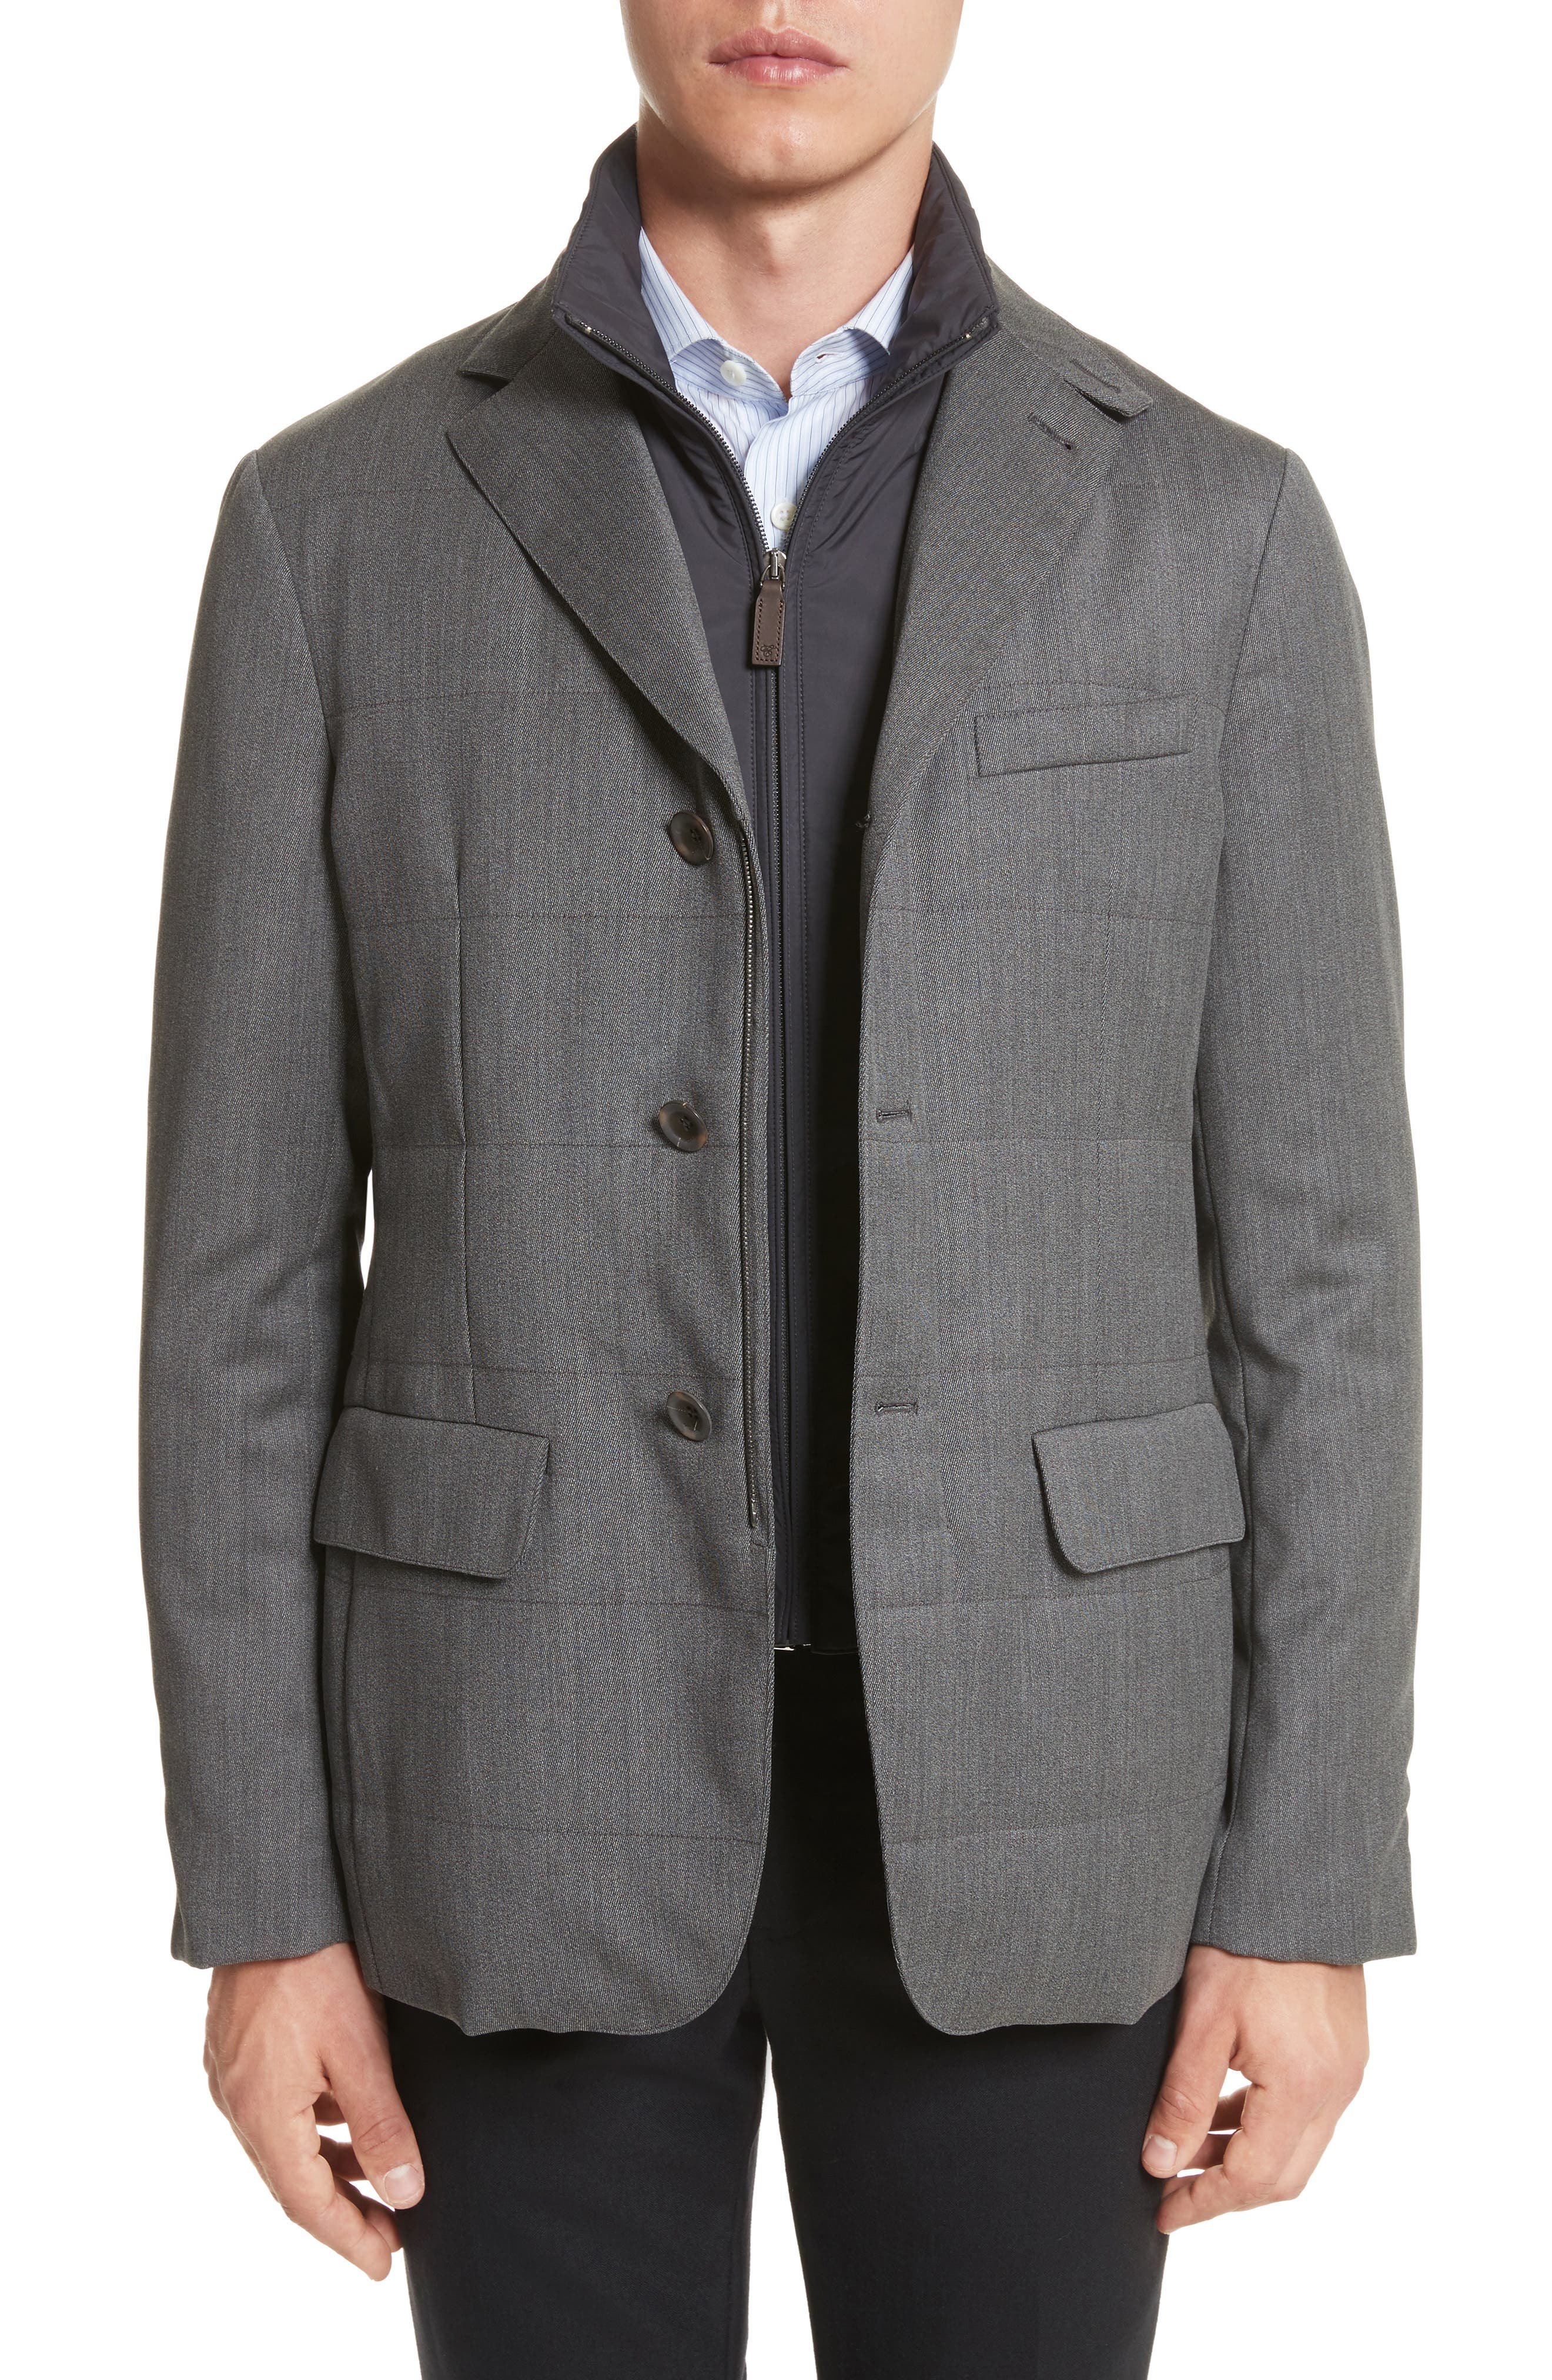 Water-Resistant Wool Jacket with Bib,                             Main thumbnail 1, color,                             050